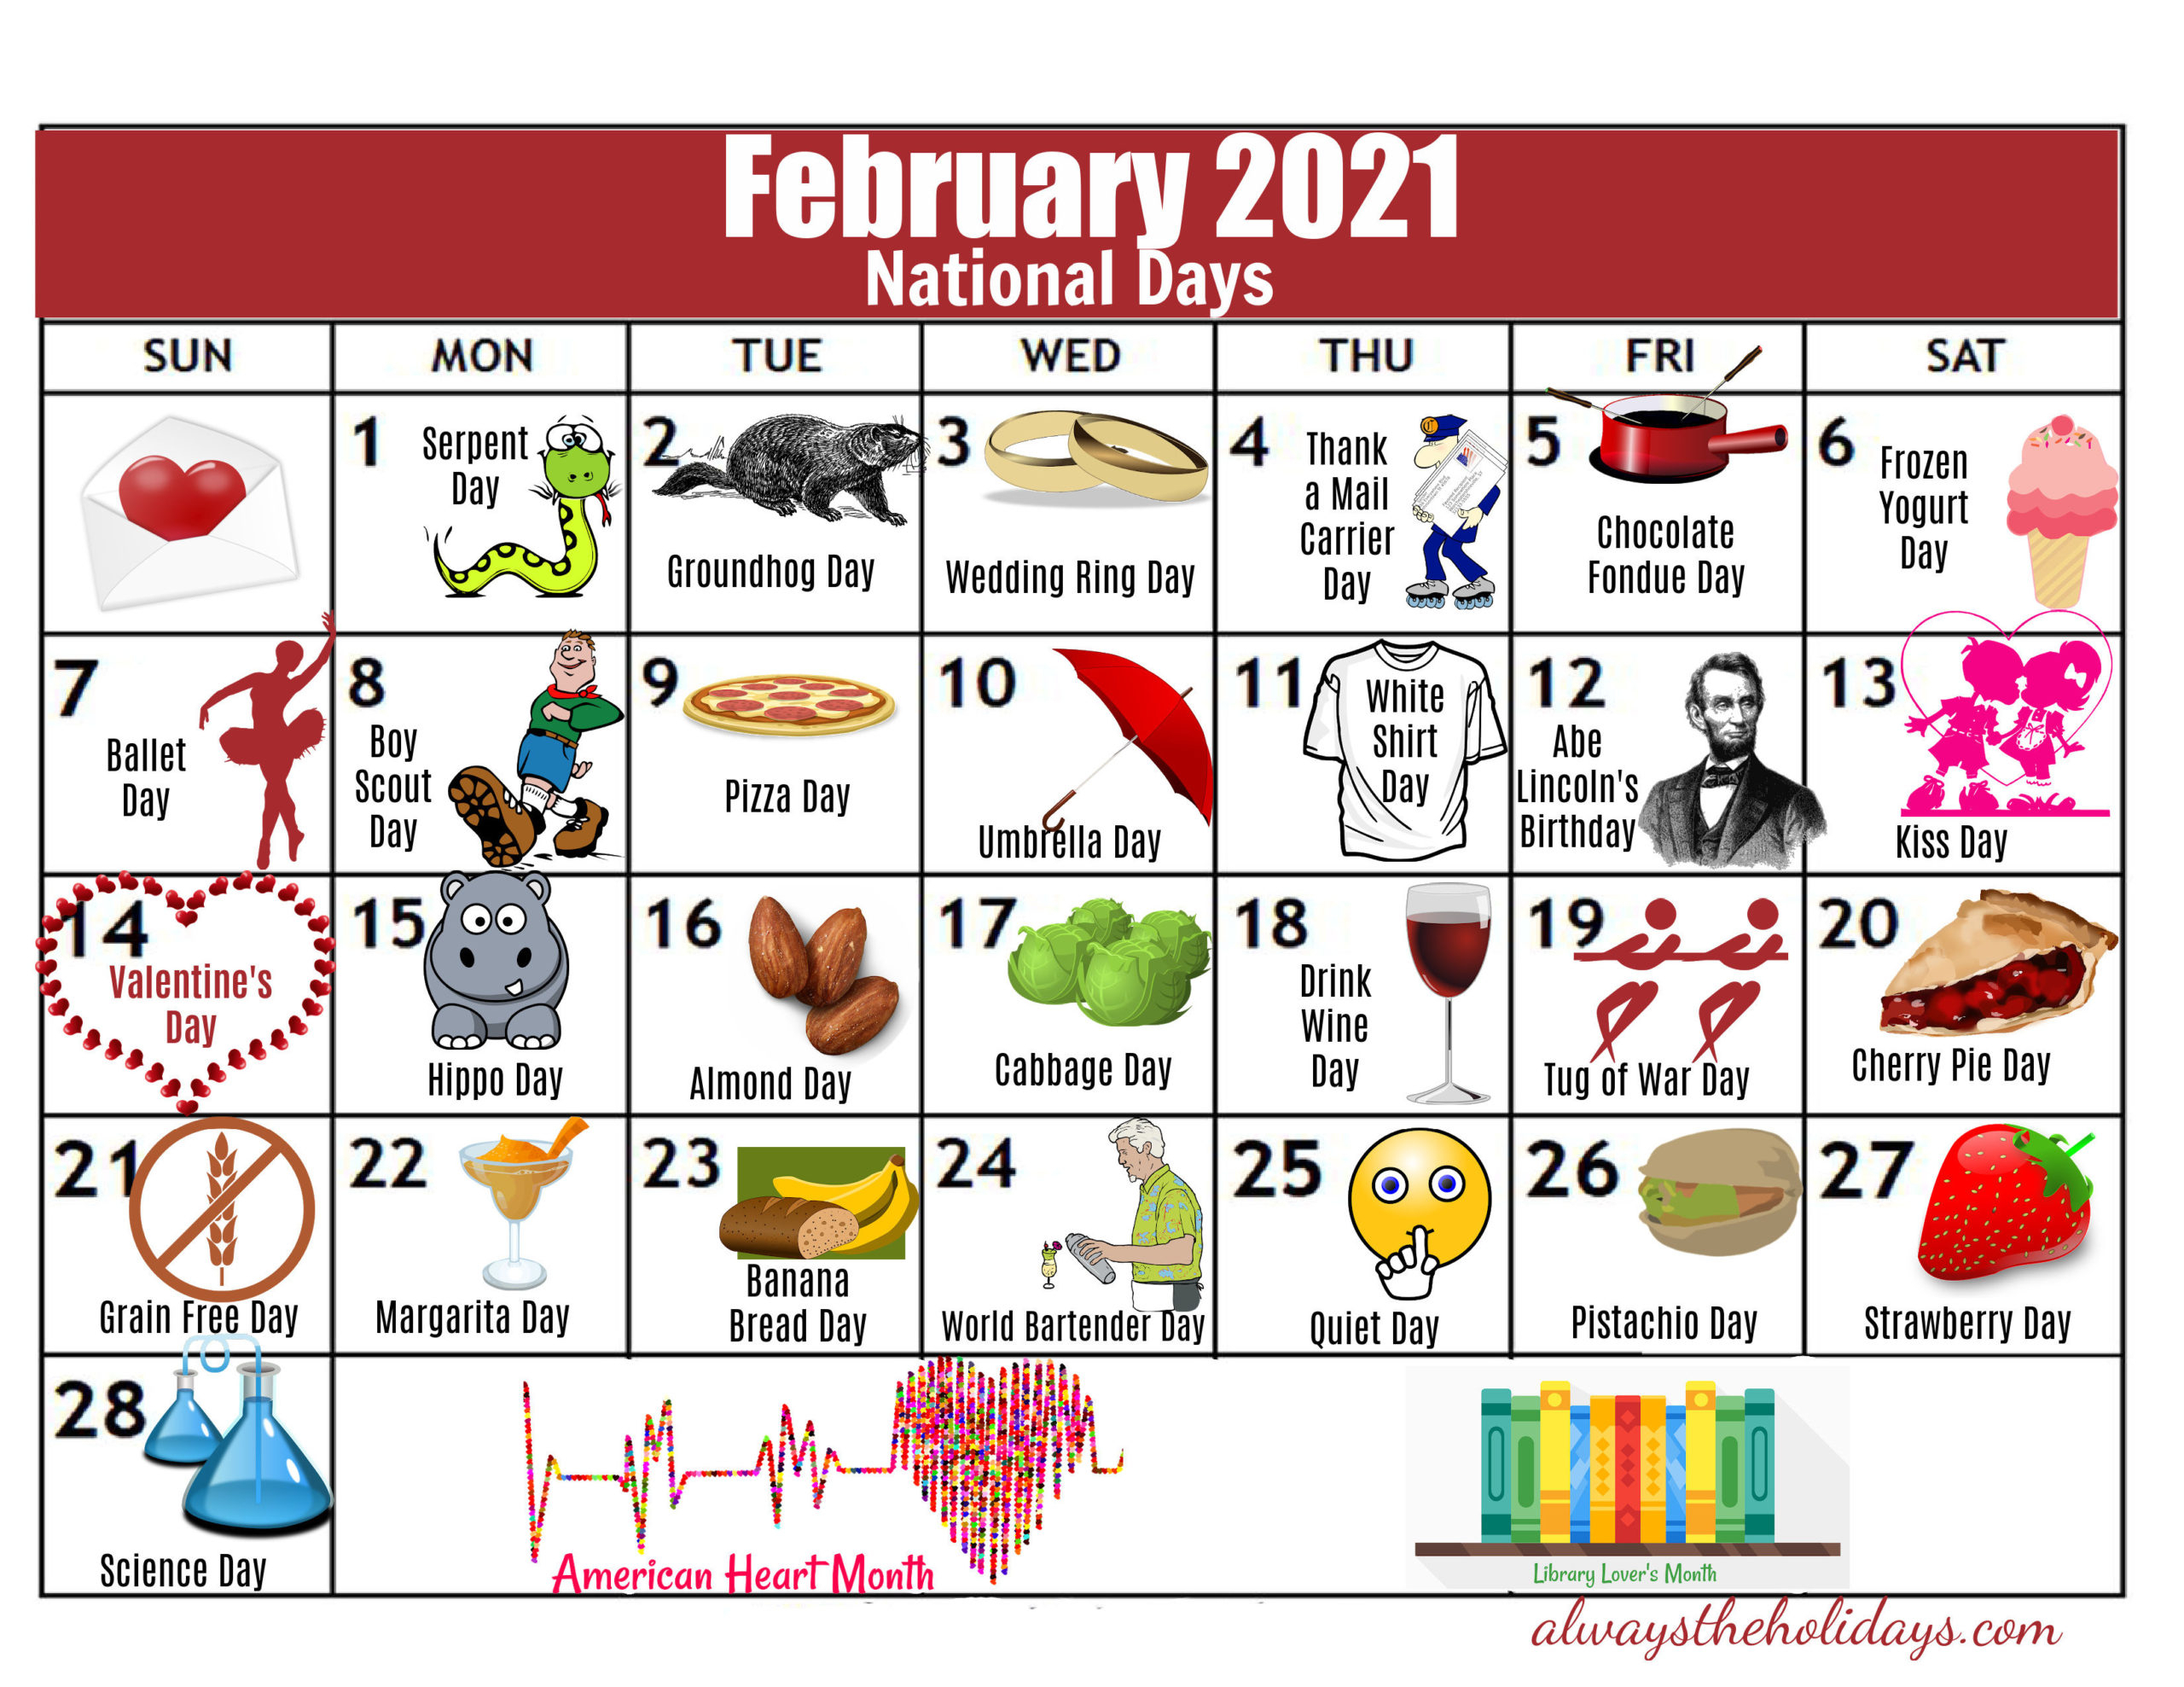 February National Day Calendar - 2021 Free Printable Calendars